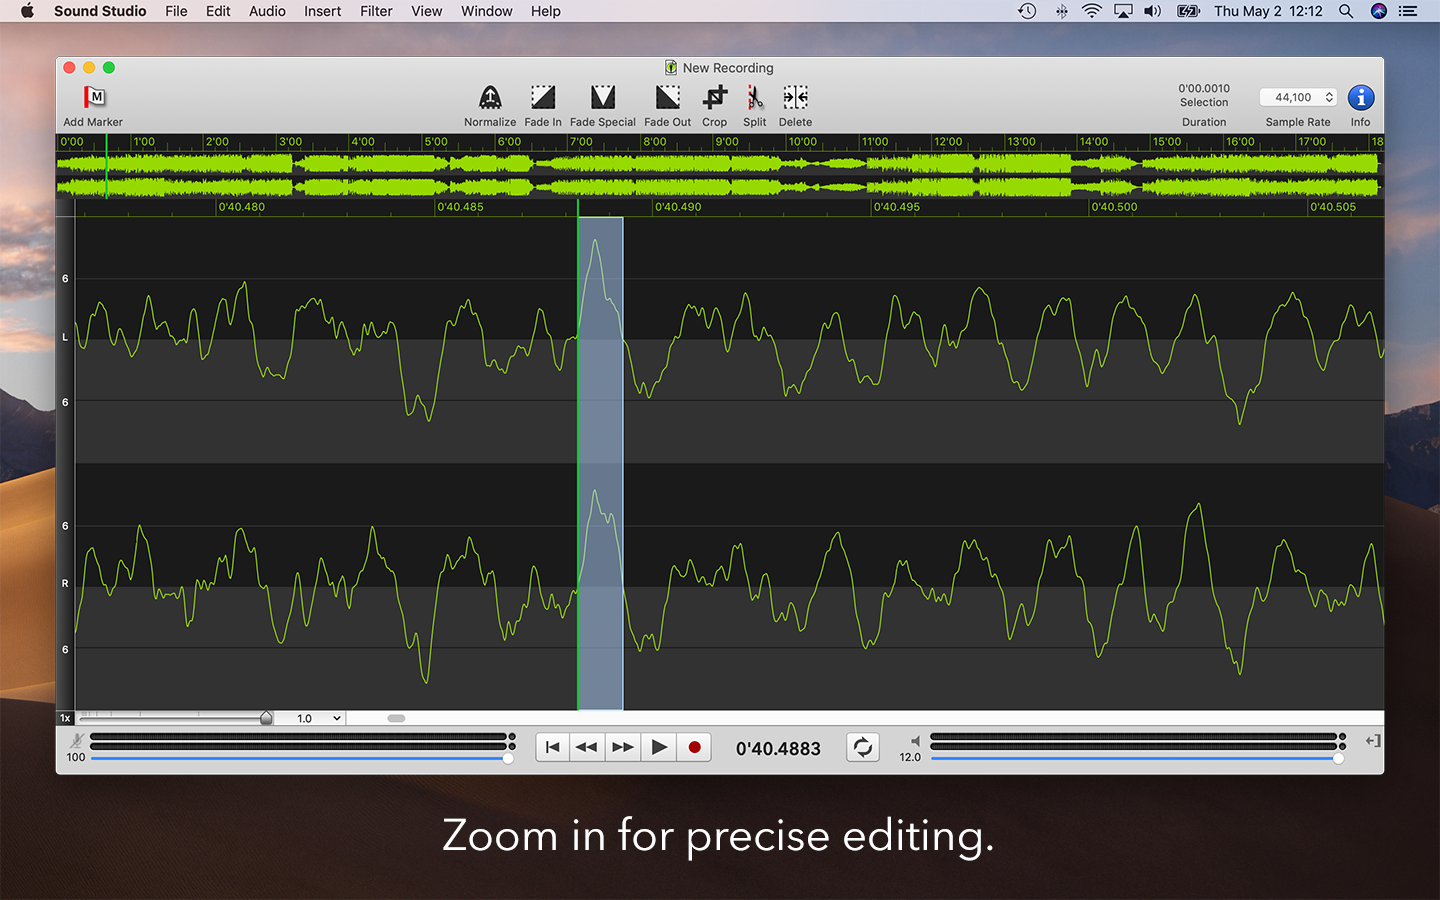 Sound Studio 4 - Mac App for Audio Editing